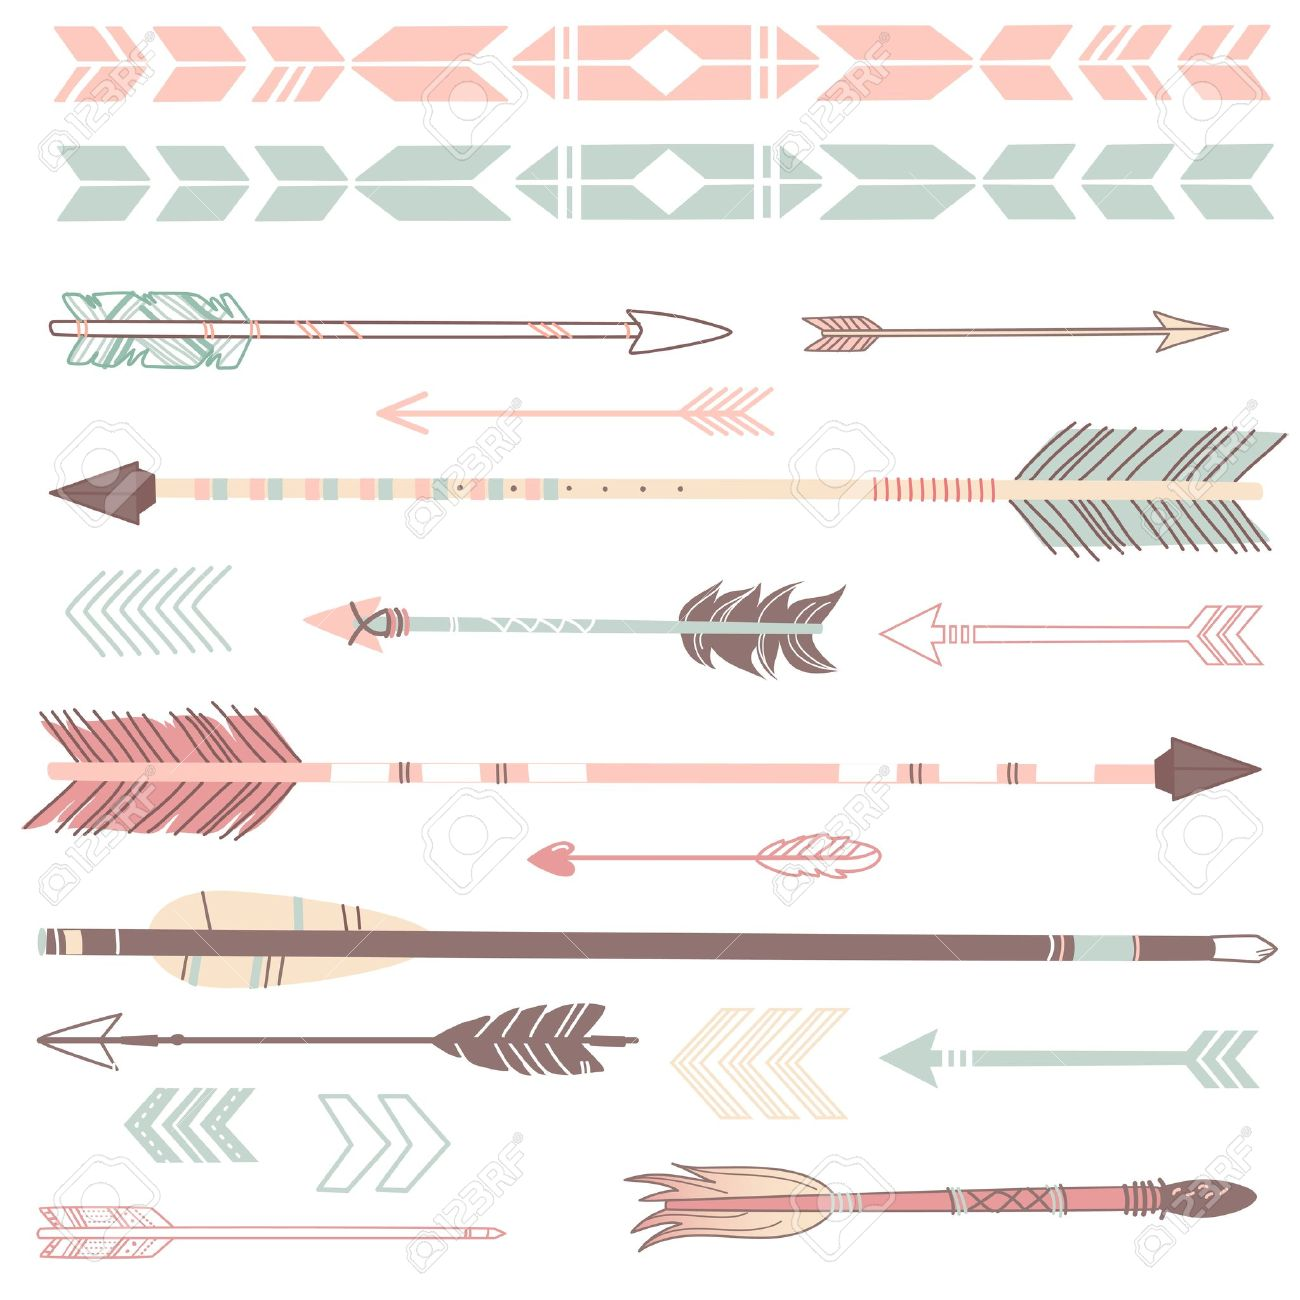 1000+ images about Arrows on Pinterest.